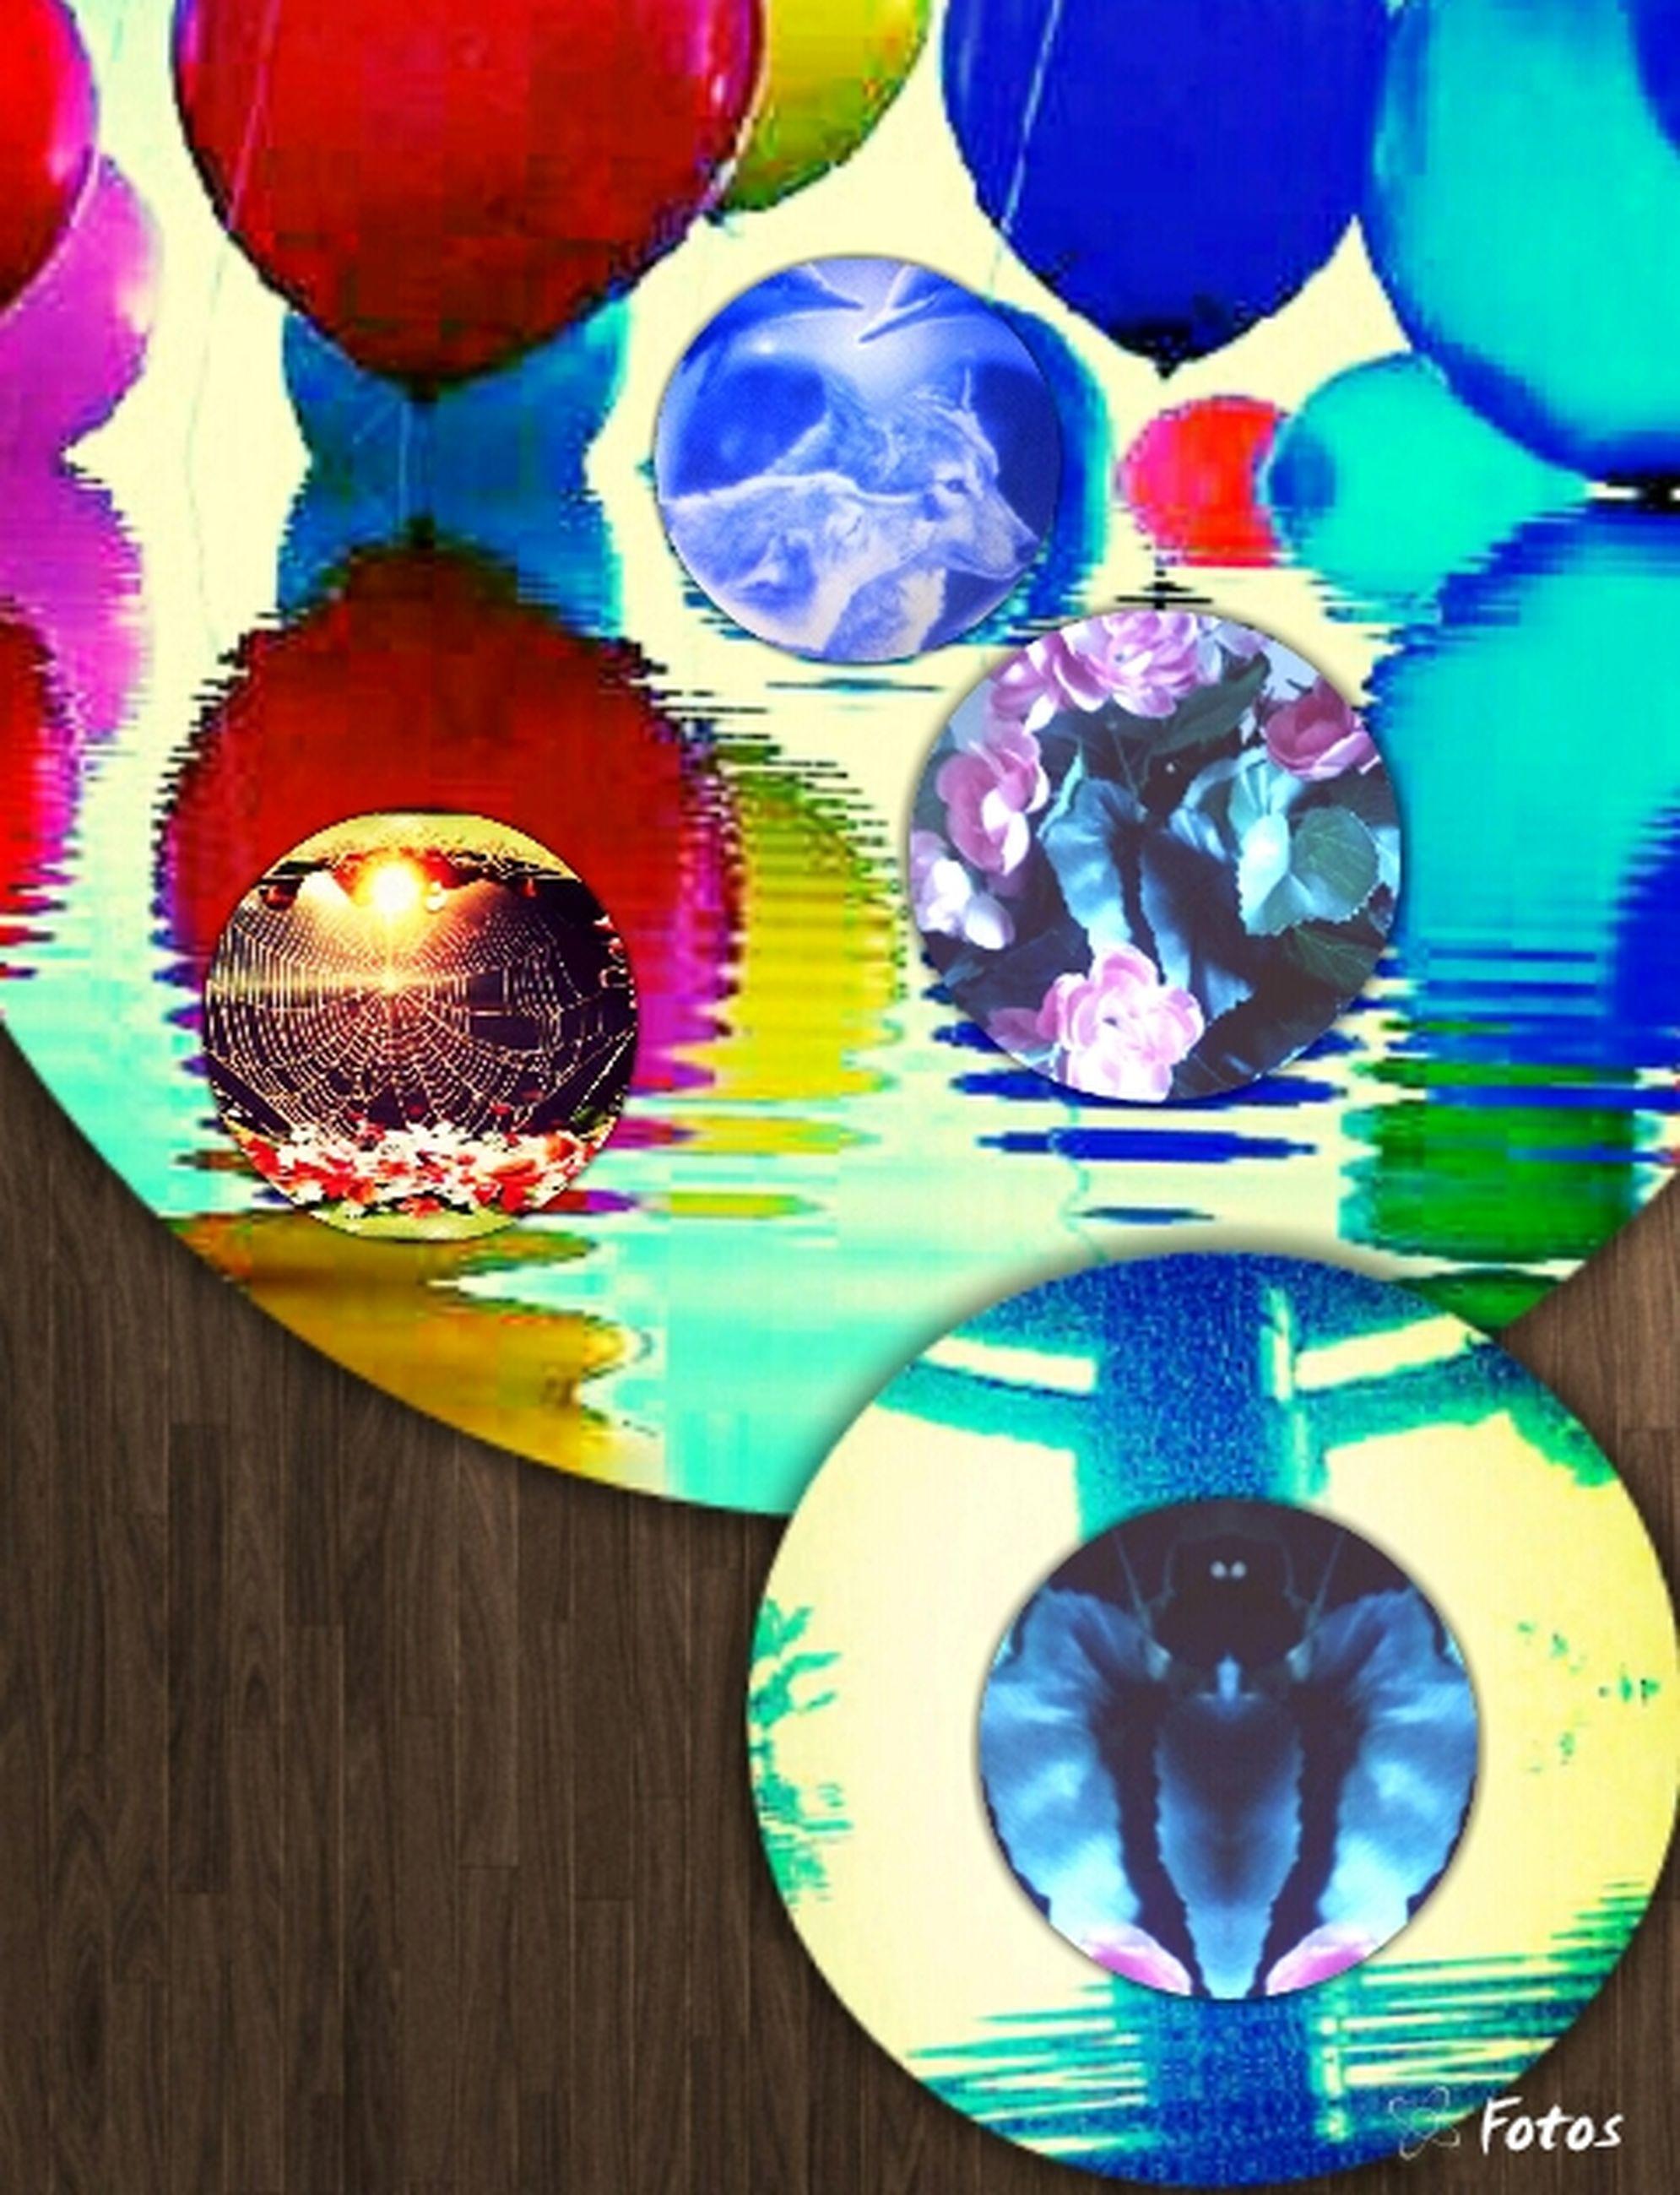 multi colored, indoors, decoration, colorful, pattern, art and craft, sphere, still life, circle, creativity, variation, blue, art, design, low angle view, celebration, no people, close-up, lighting equipment, geometric shape